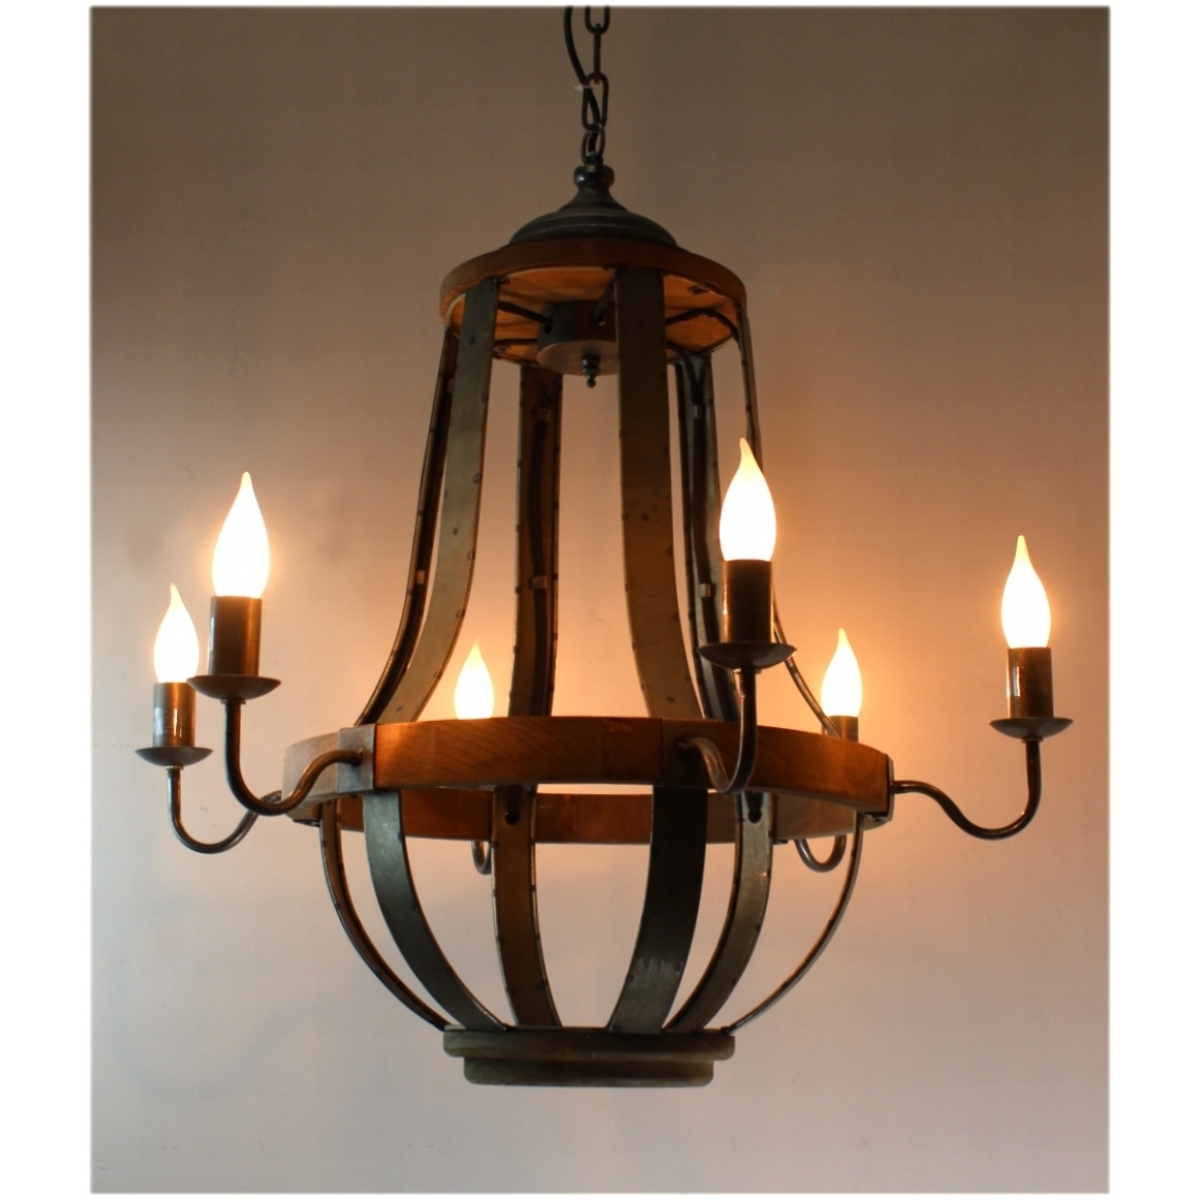 Latest $579 Iron Strap And Aged Wood Chandelier French Country Vintage Inside Vintage French Chandeliers (View 12 of 20)